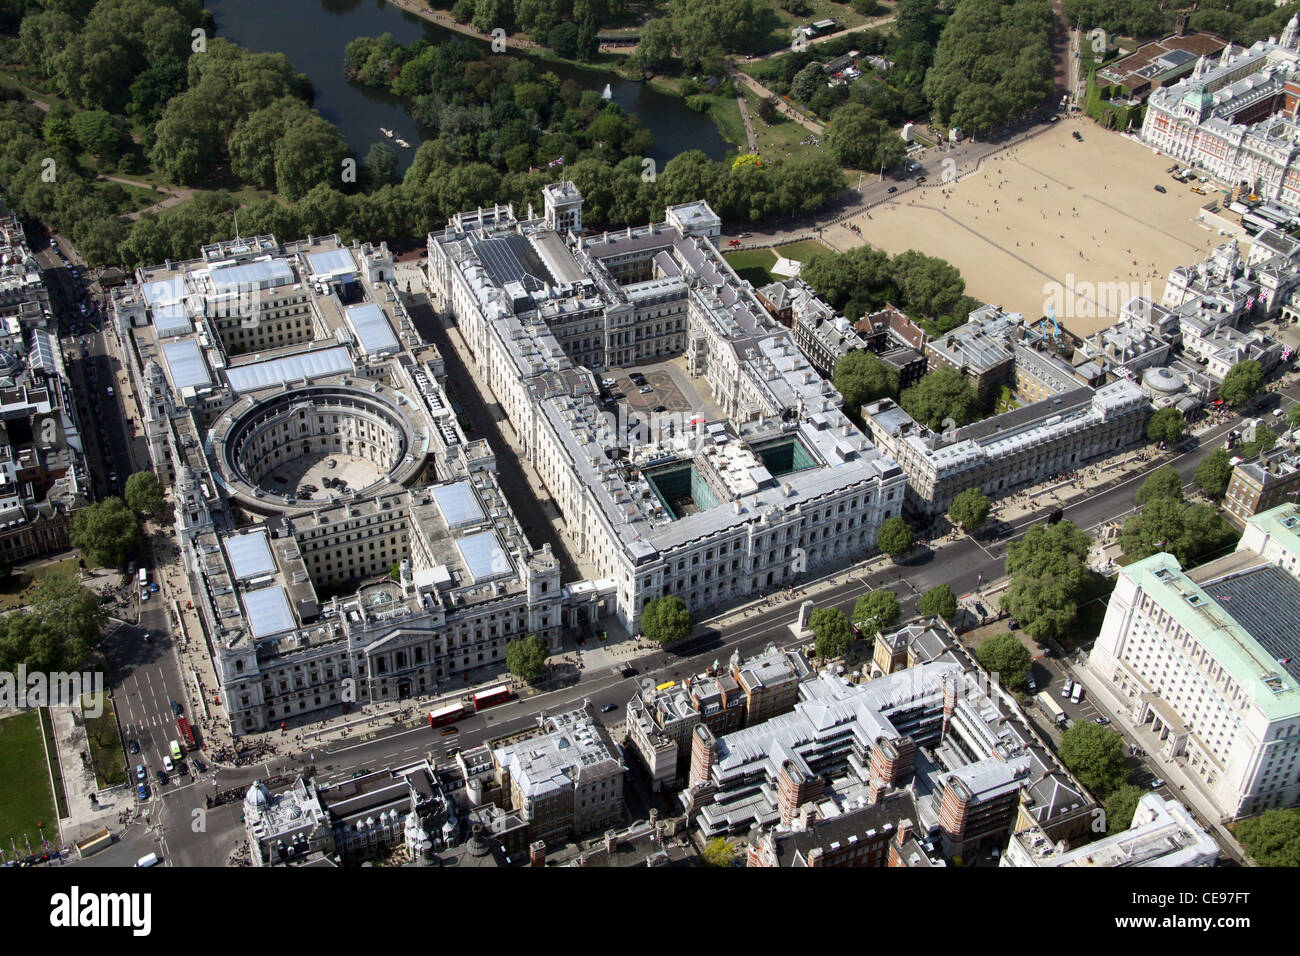 Aerial image, Parliament Street, Whitehall, London SW1 - Stock Image